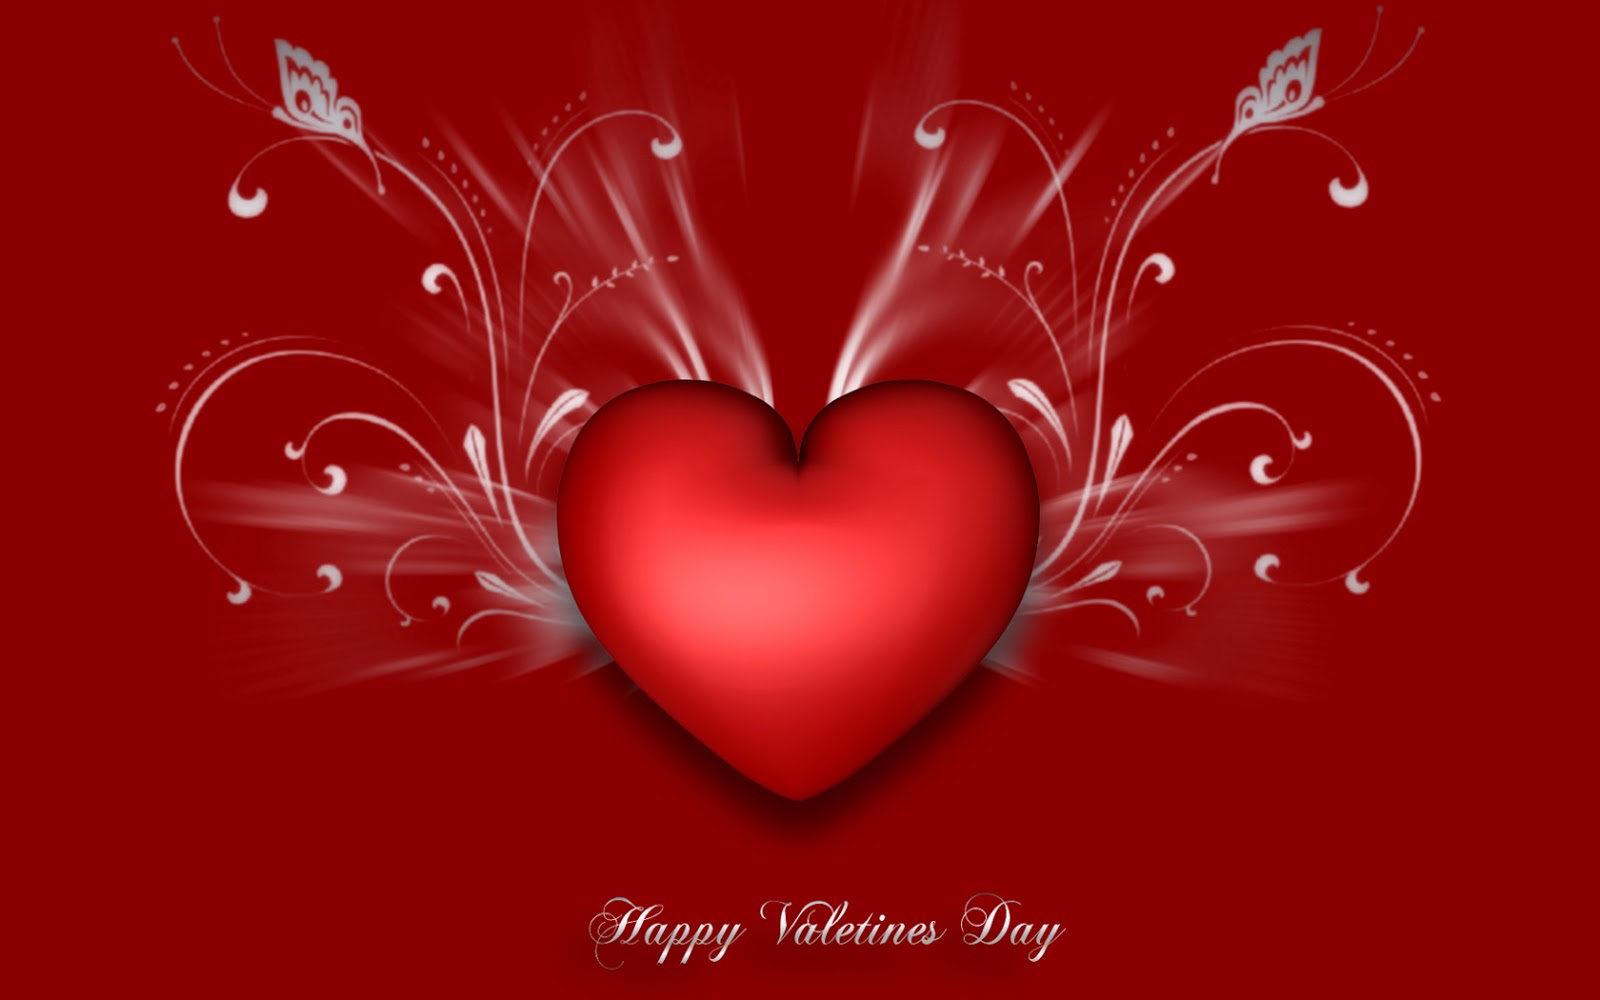 14th Feb 2014 Romantic HD Wallpapers Greetings Wishes Quotes